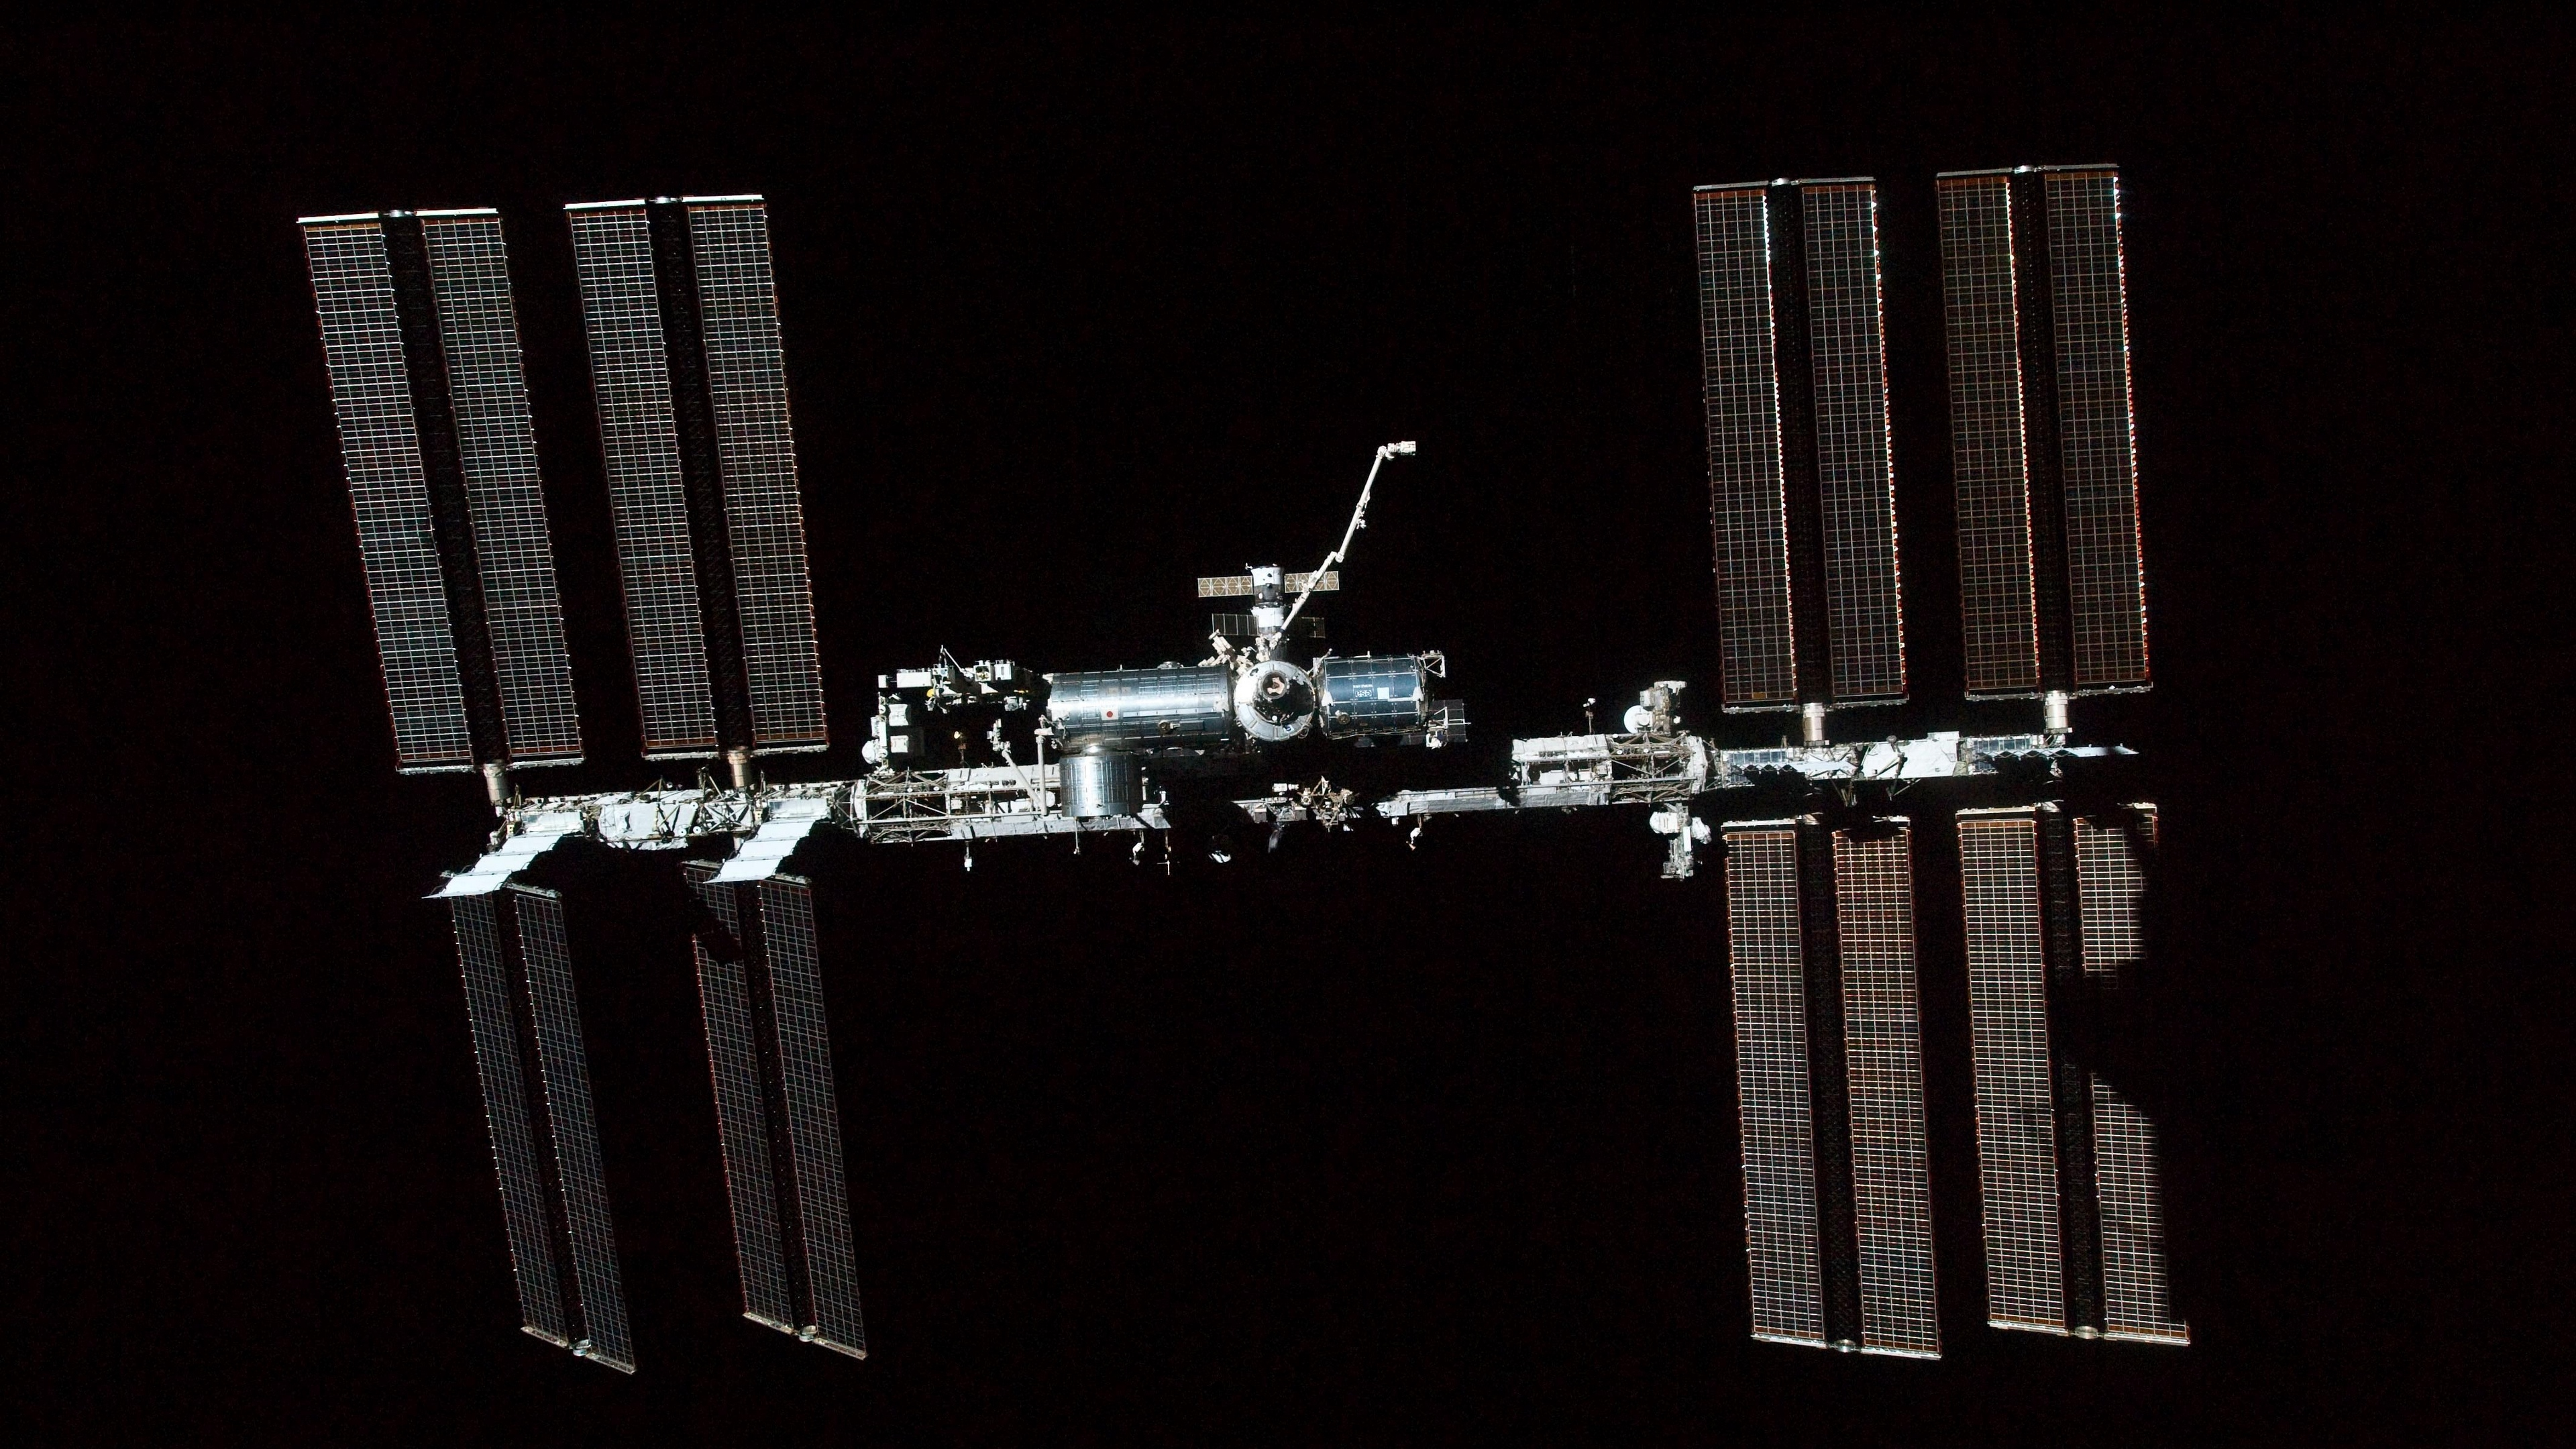 iss space solar cells photo 4k 1536013855 - iss, space, solar cells, photo 4k - Space, solar cells, iss